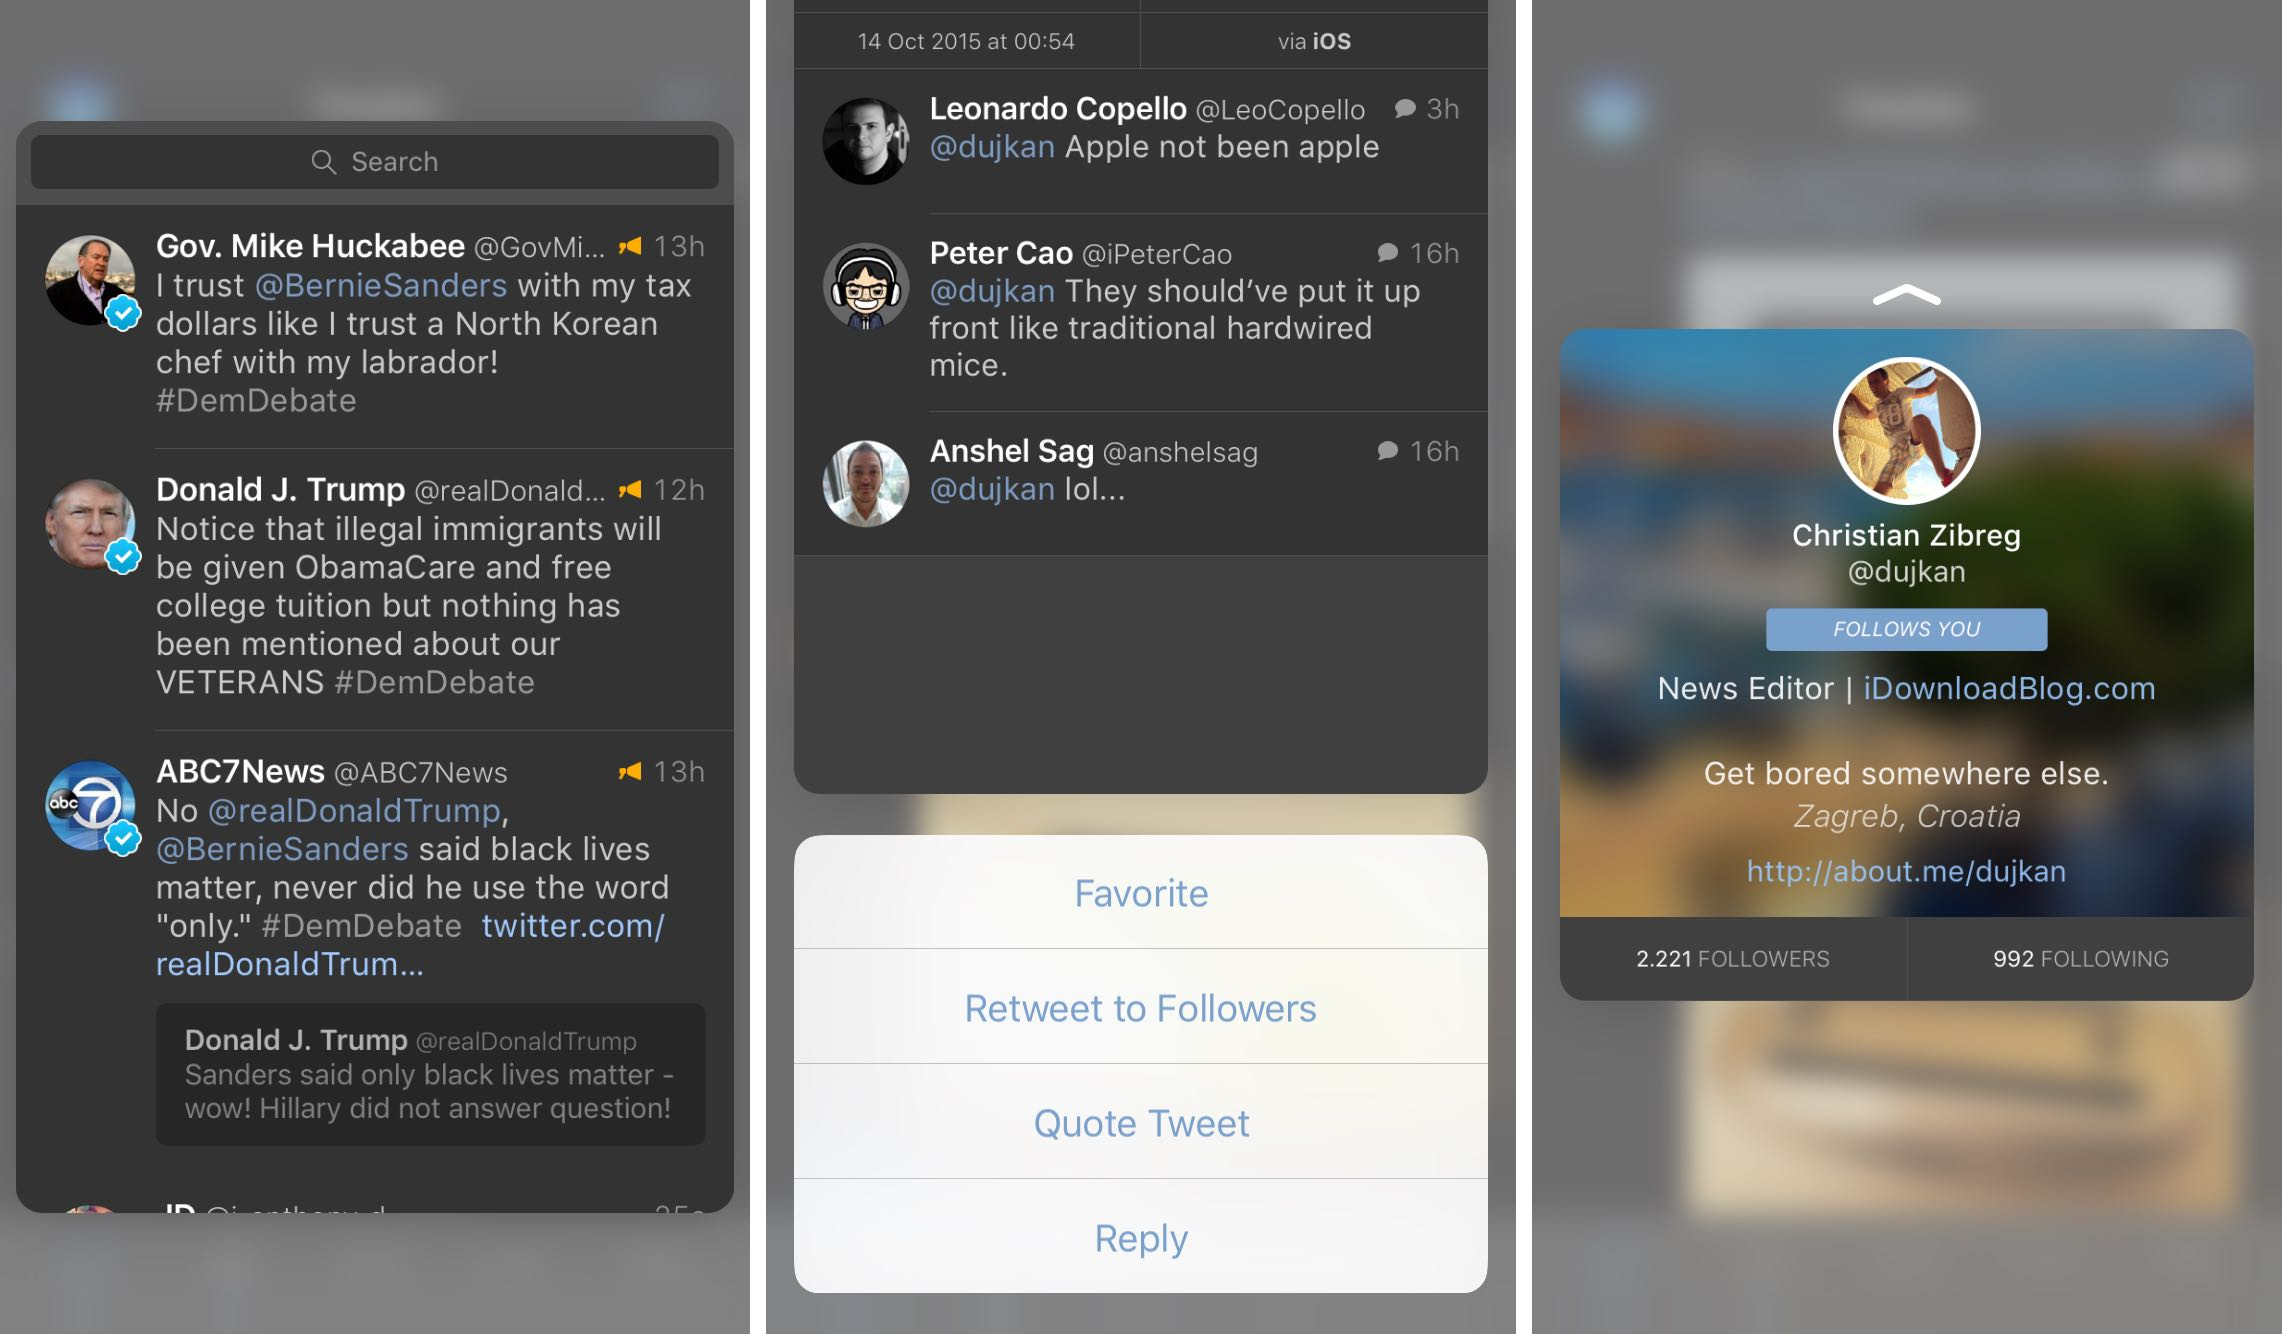 Tweetbot 4.0.1 para iOS 3D Touch iPhone captura de pantalla 002